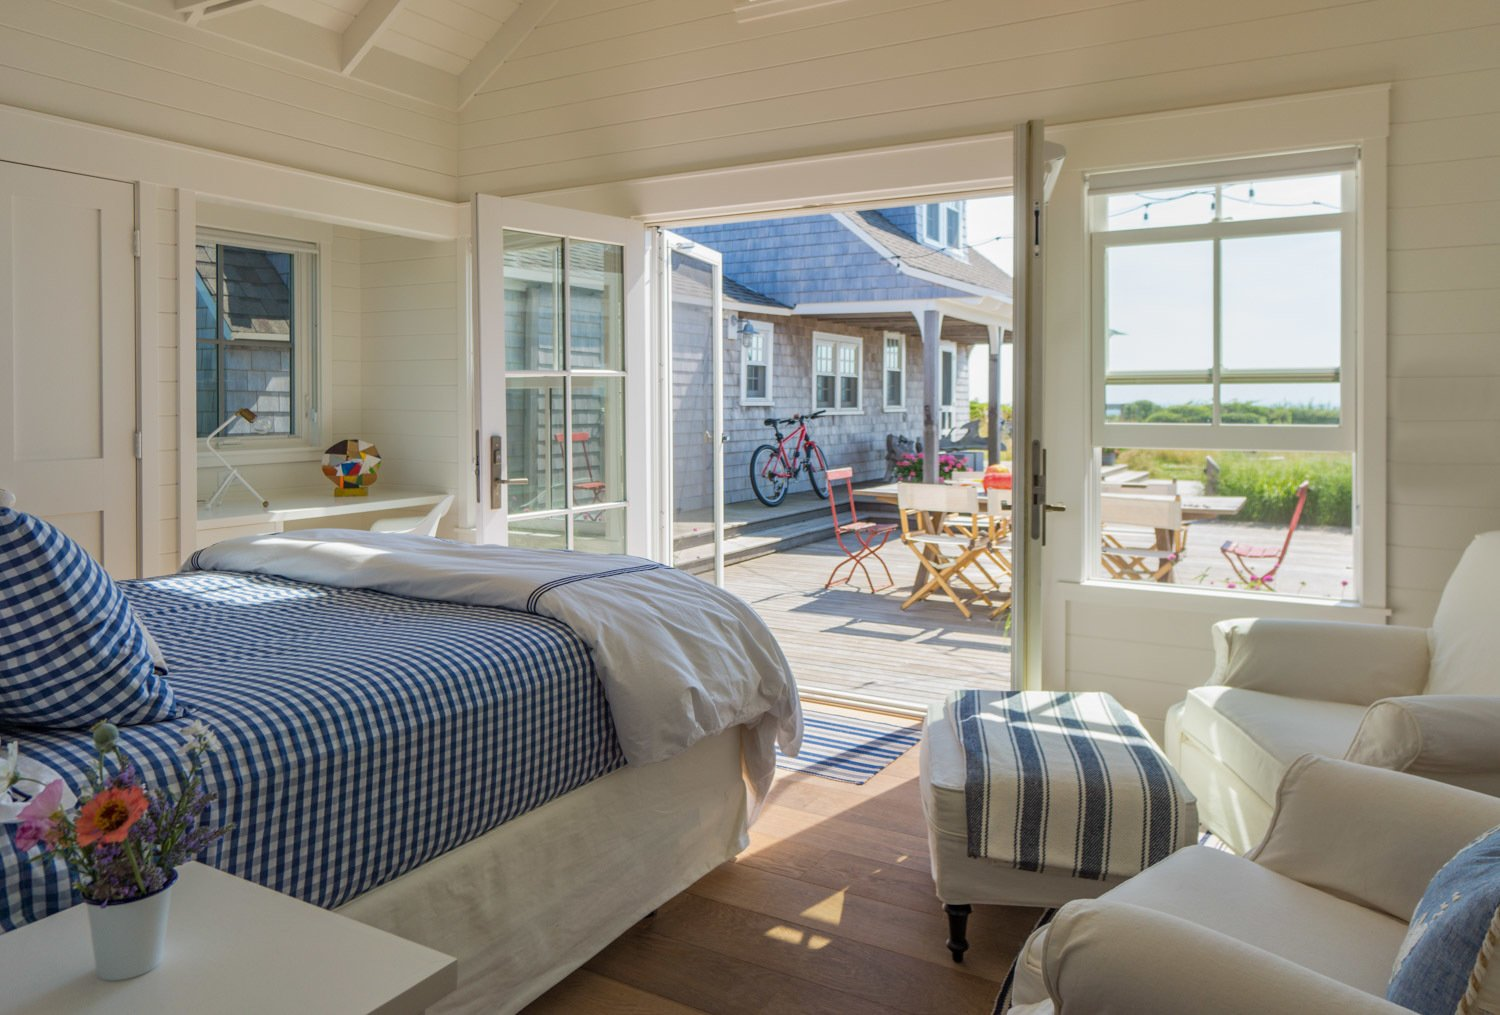 Guest cottage french doors provide welcome access to a sunny iconic courtyard.  Corkin House